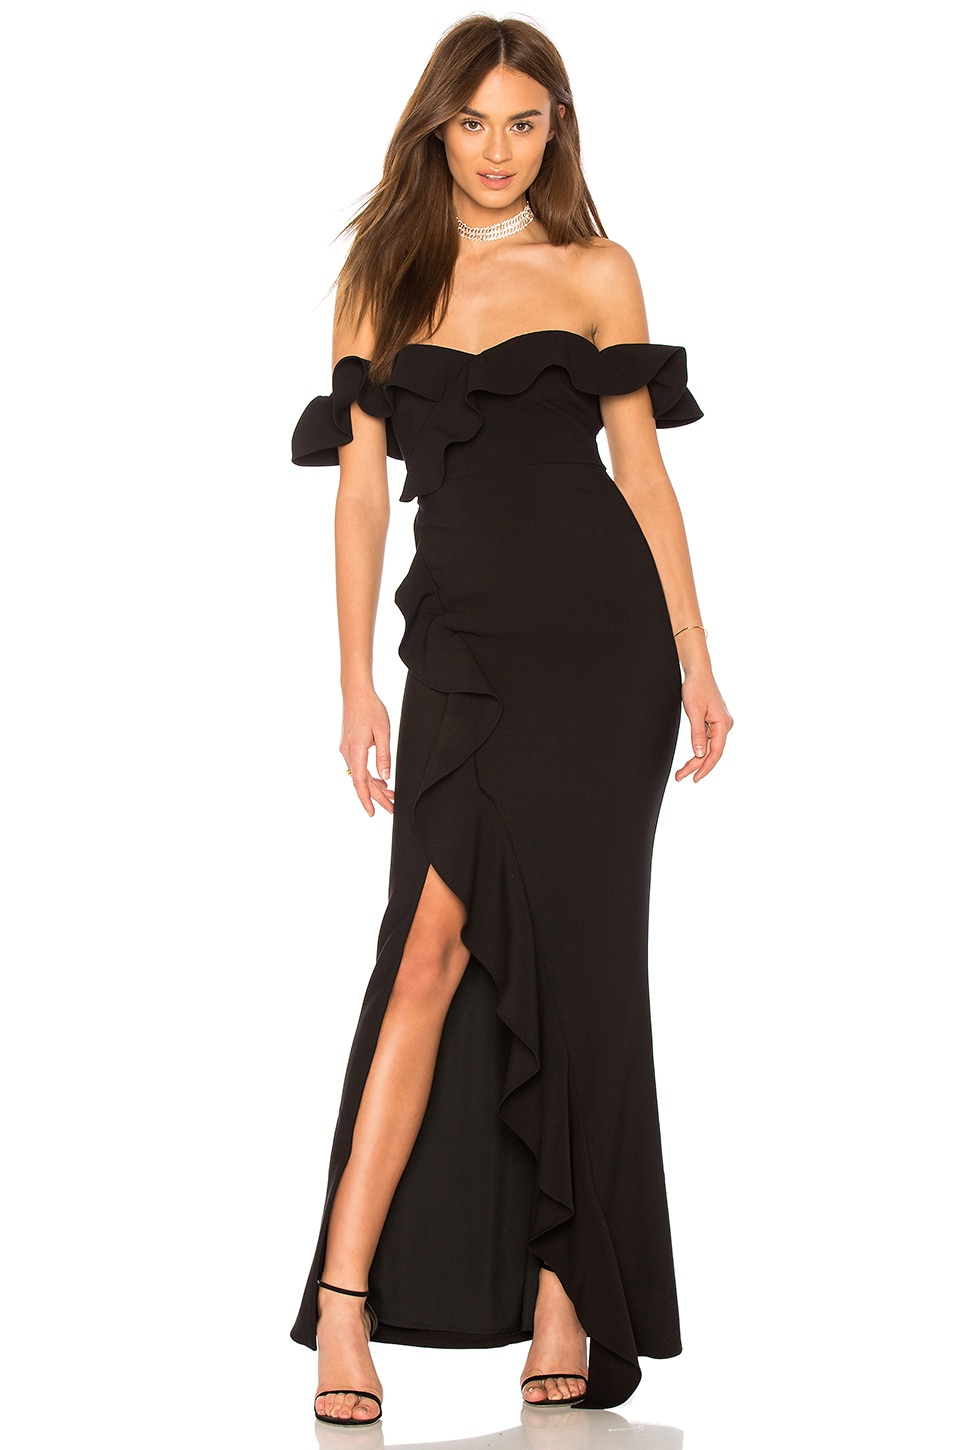 LIKELY Miller Gown in Black